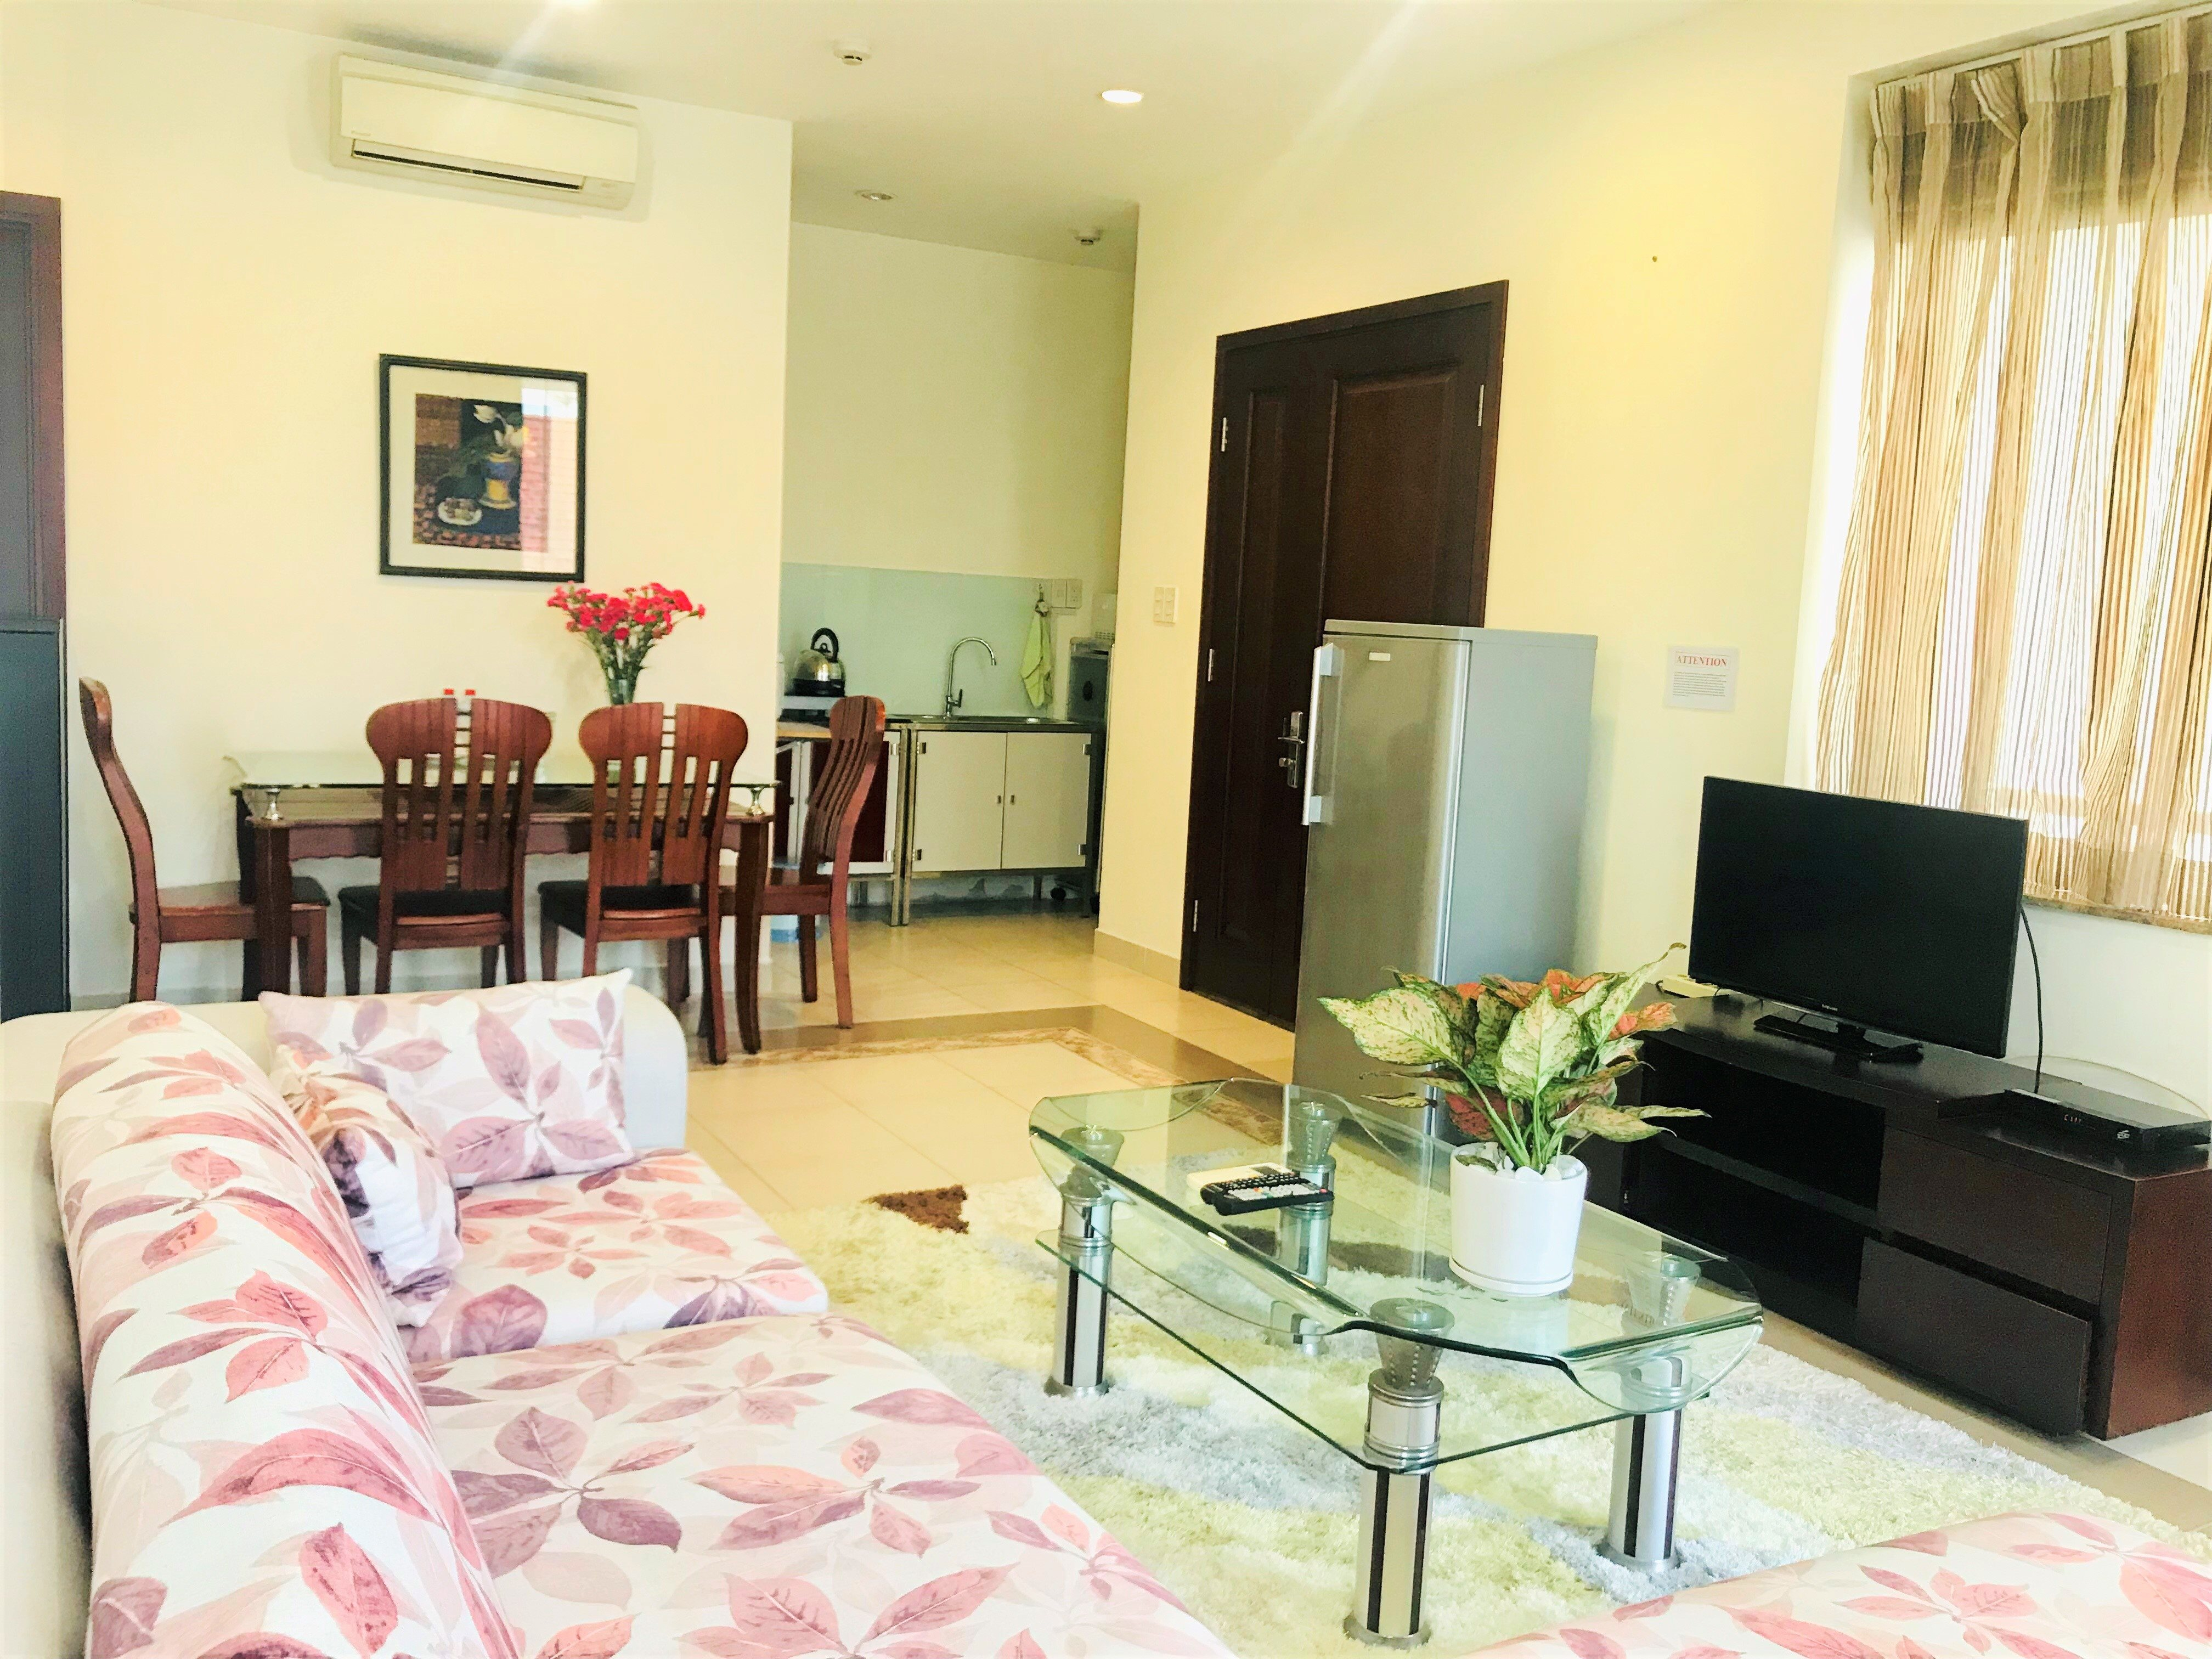 Apartment for rent D799003 (4)